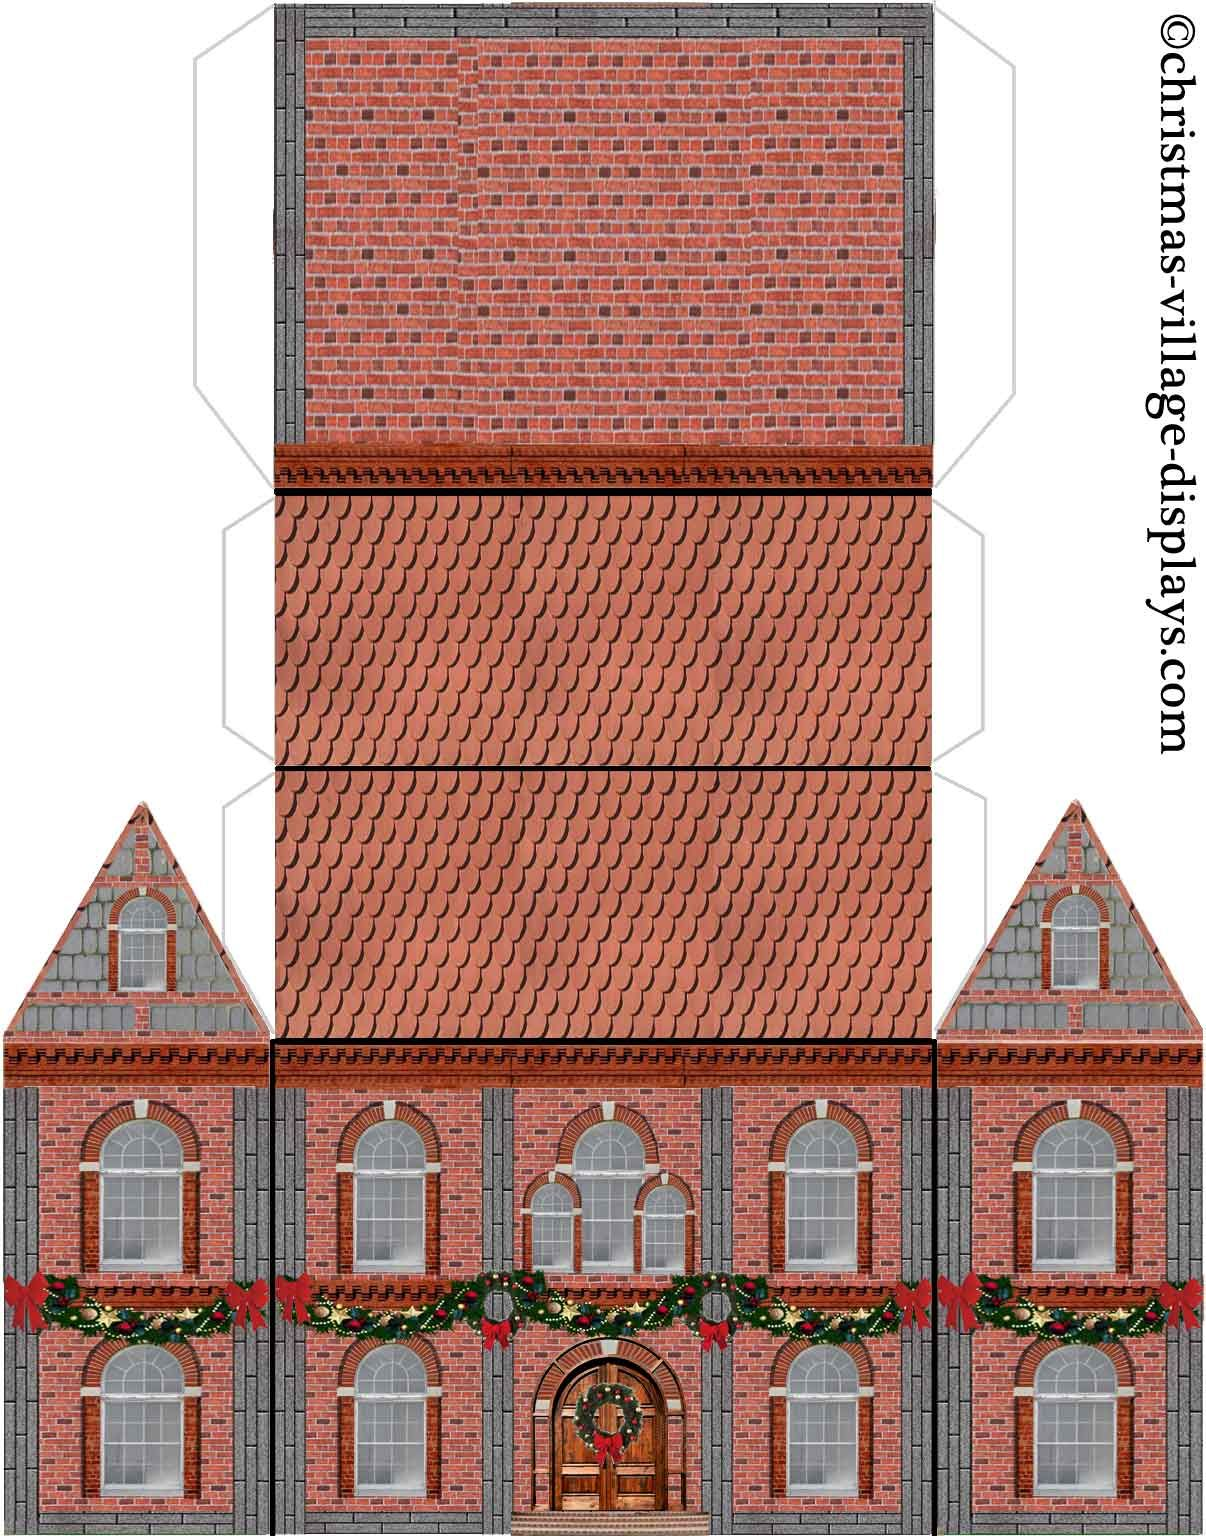 photo regarding Printable Christmas Village Template identified as Cardboard Design Area Template Printable type template